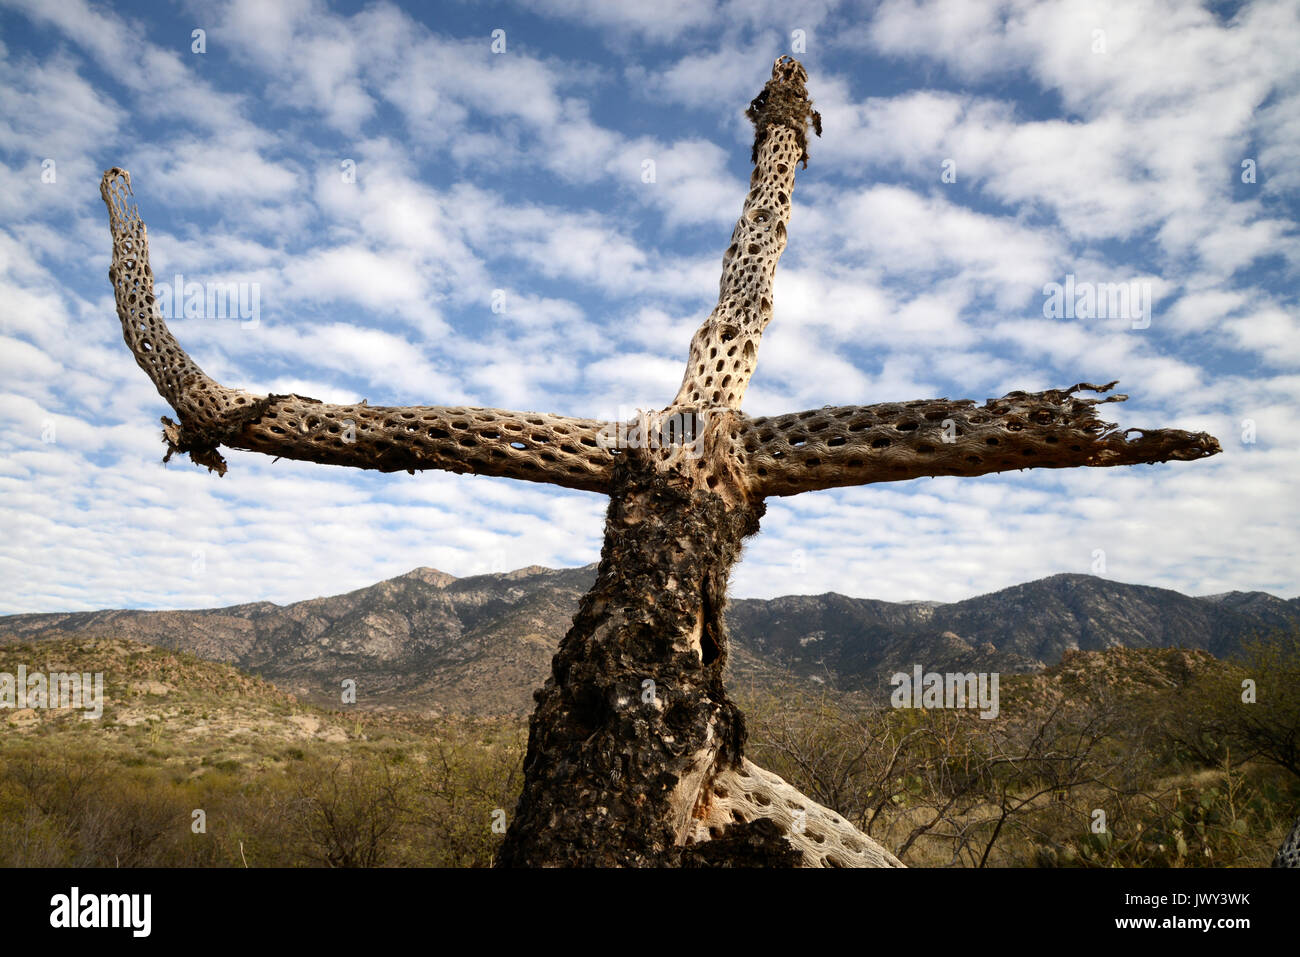 The skeleton of a cholla cactus stands over the Sonoran Desert in the foothills of the Santa Catalina Mountains, Stock Photo